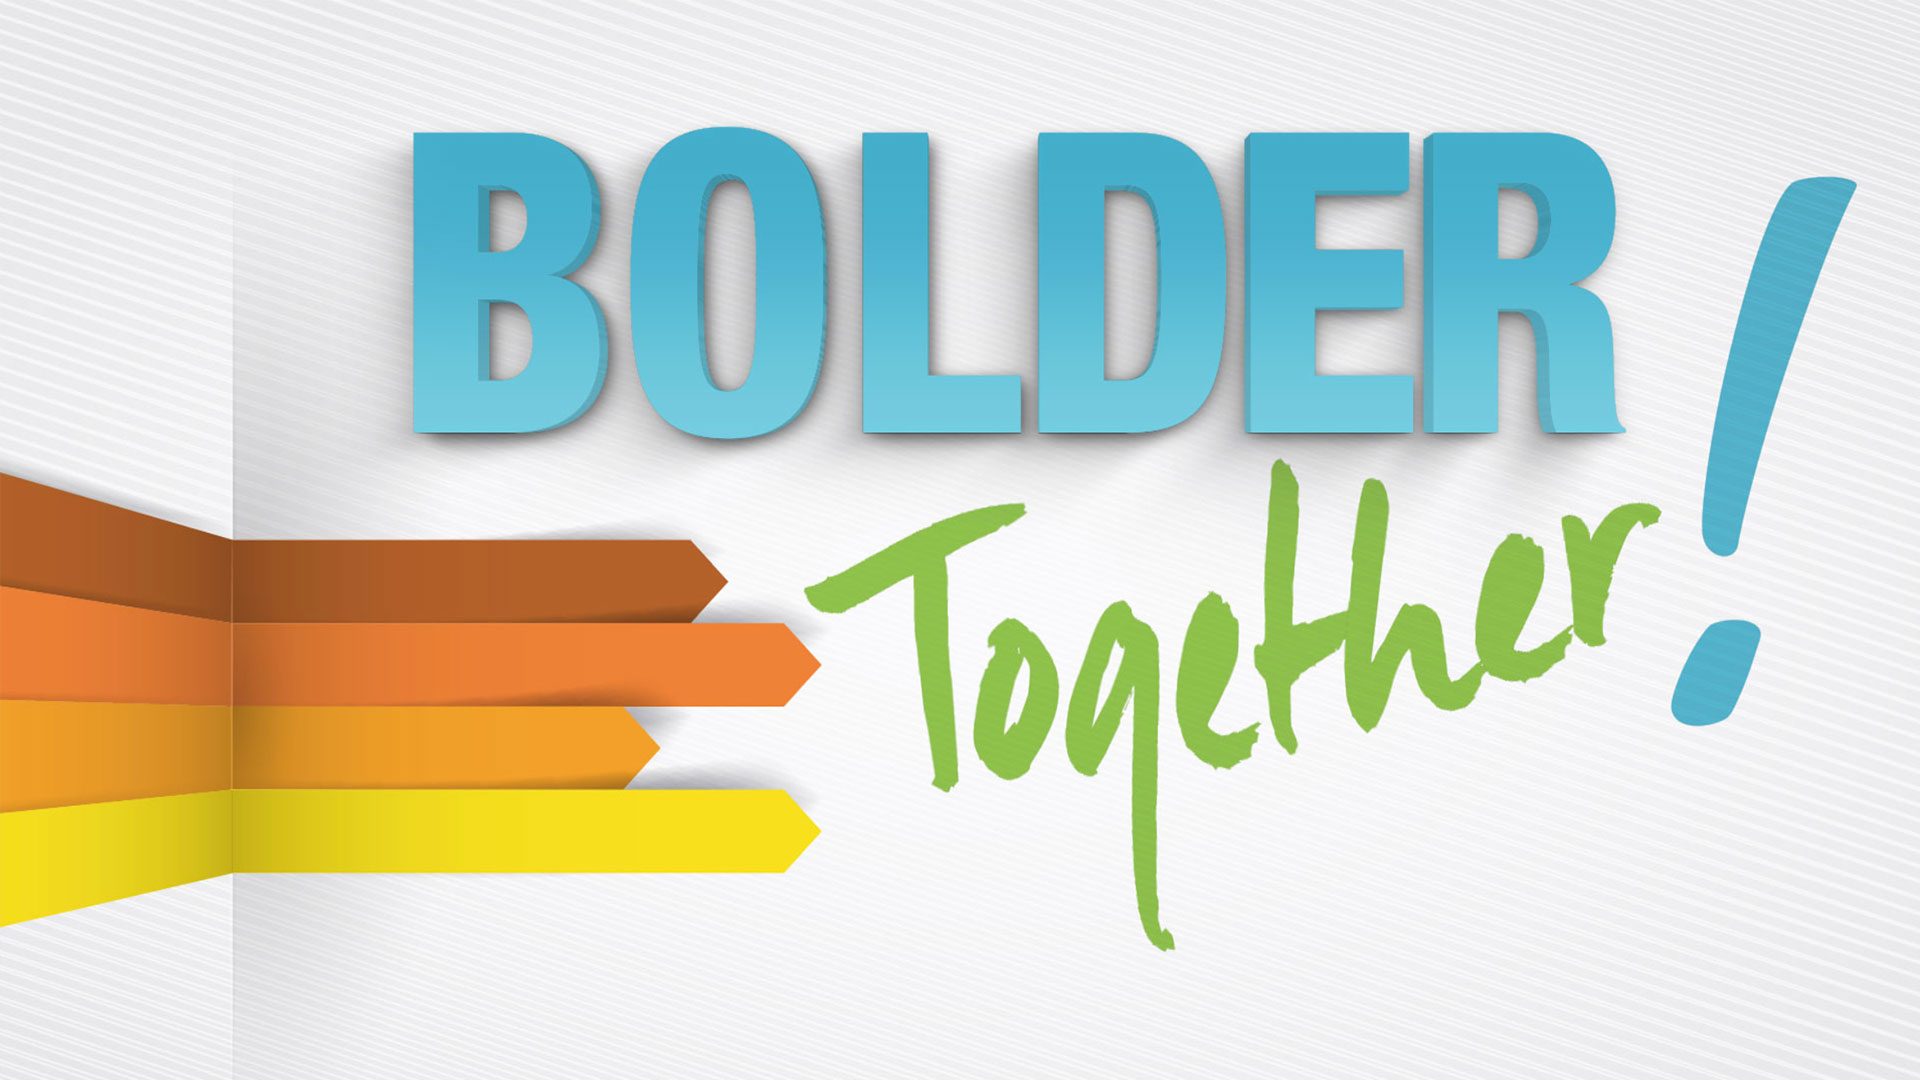 Theme_BolderTogether